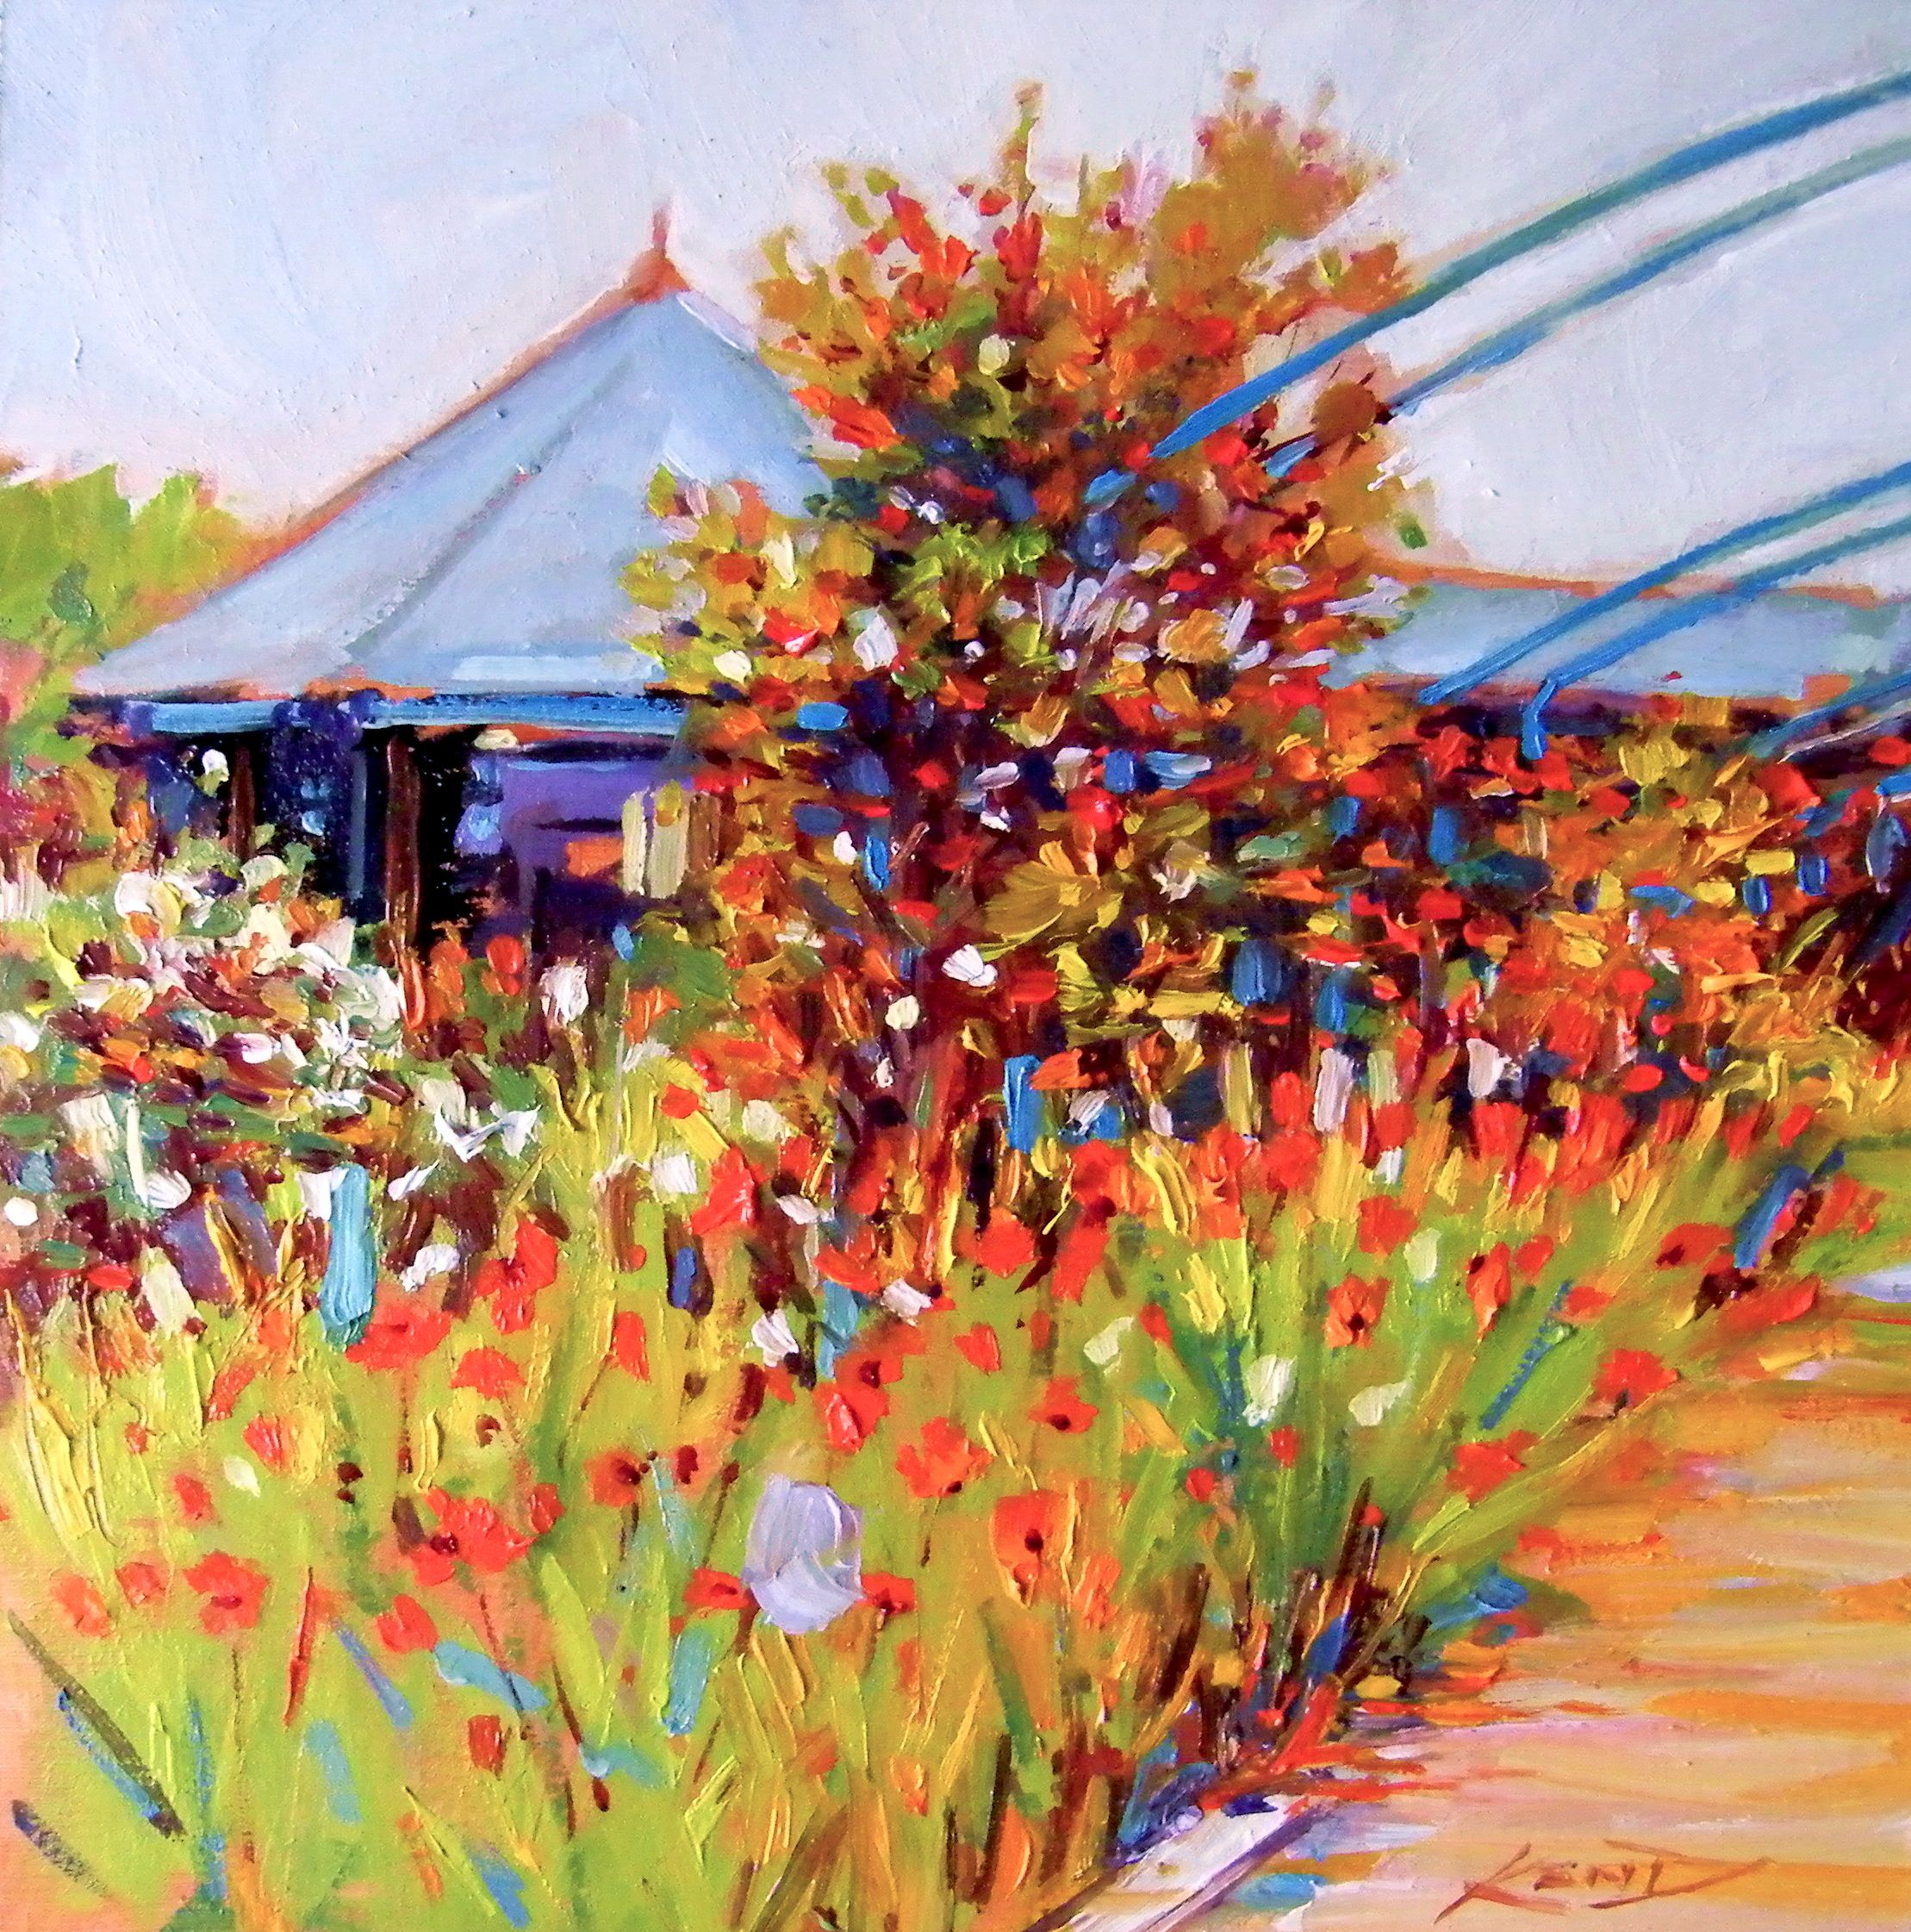 """""""Patchings...Proceeds to the children of Africa challenge (World Vision)"""" original fine art by Ken Devine"""